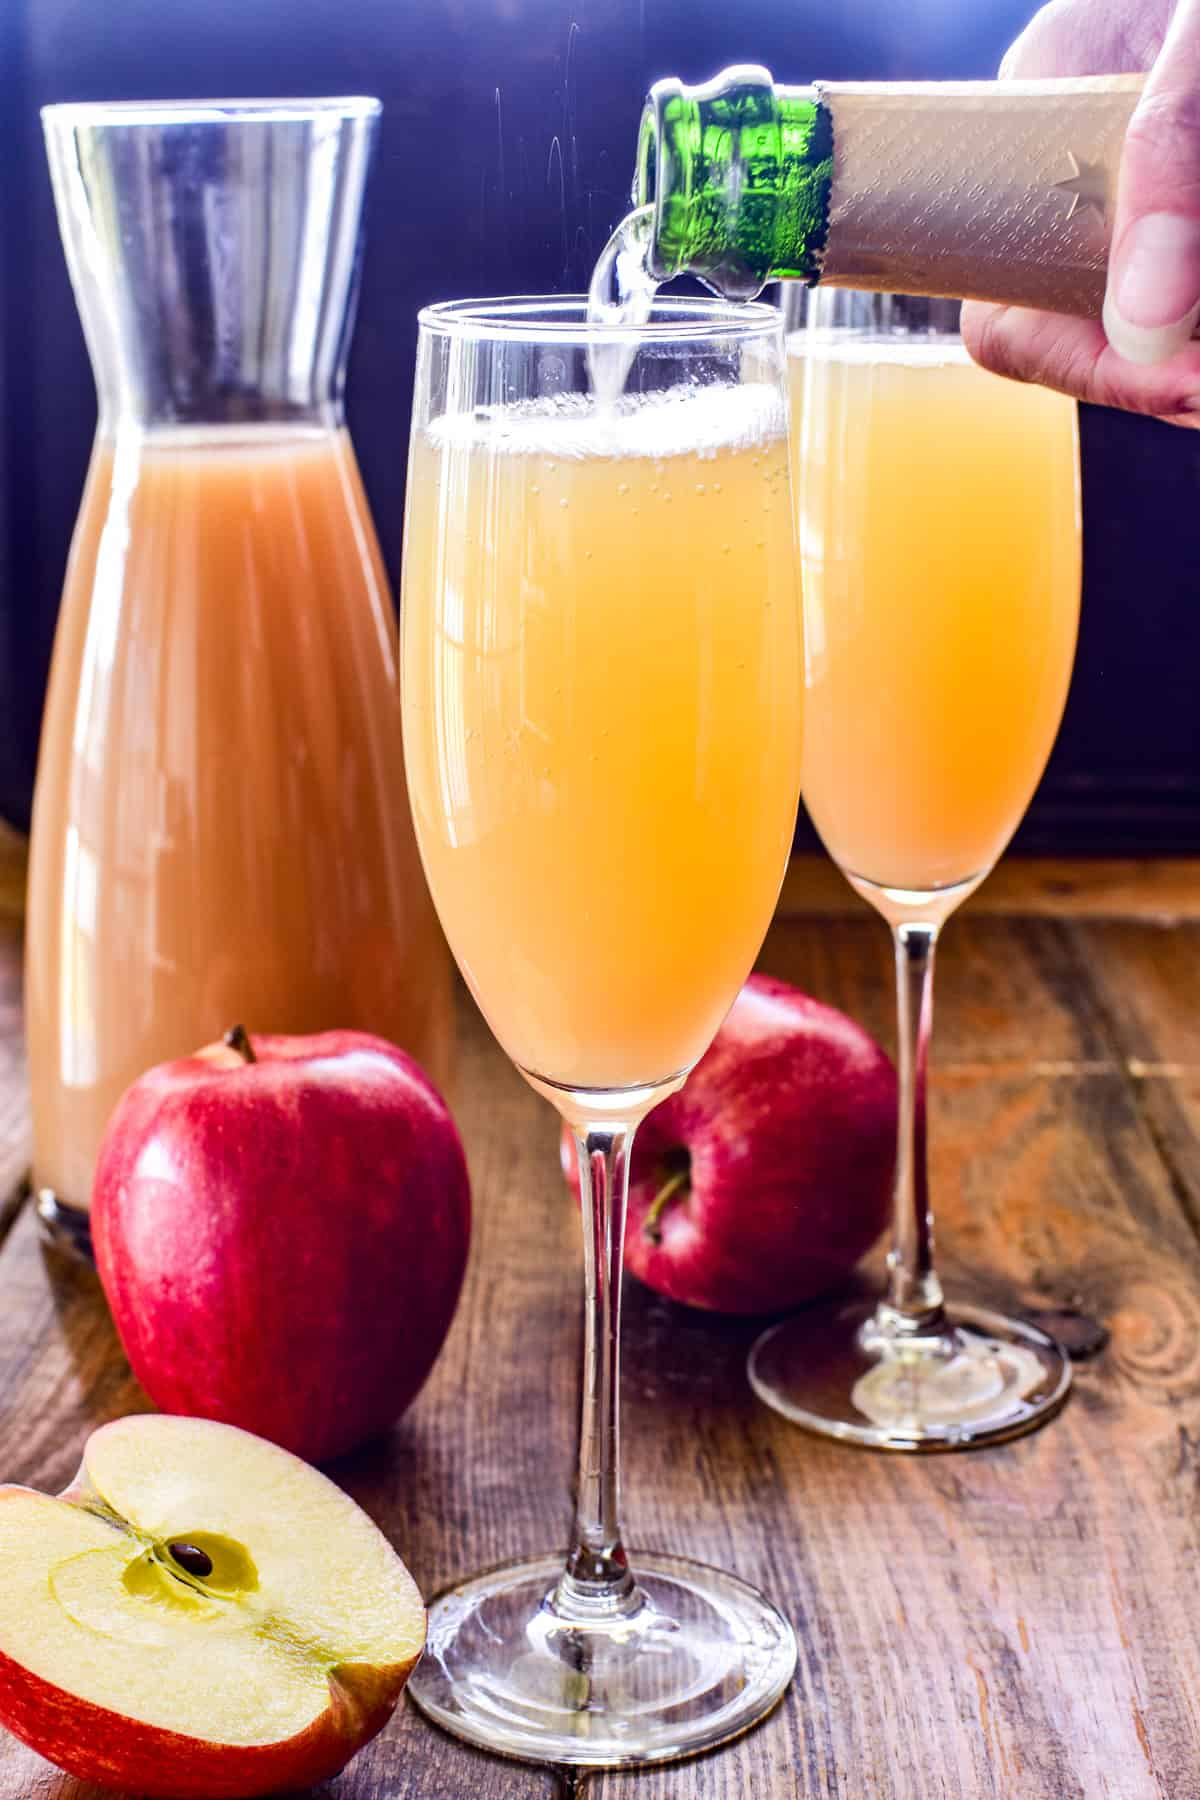 Photo of champagne being poured into an Apple Cider Mimosa